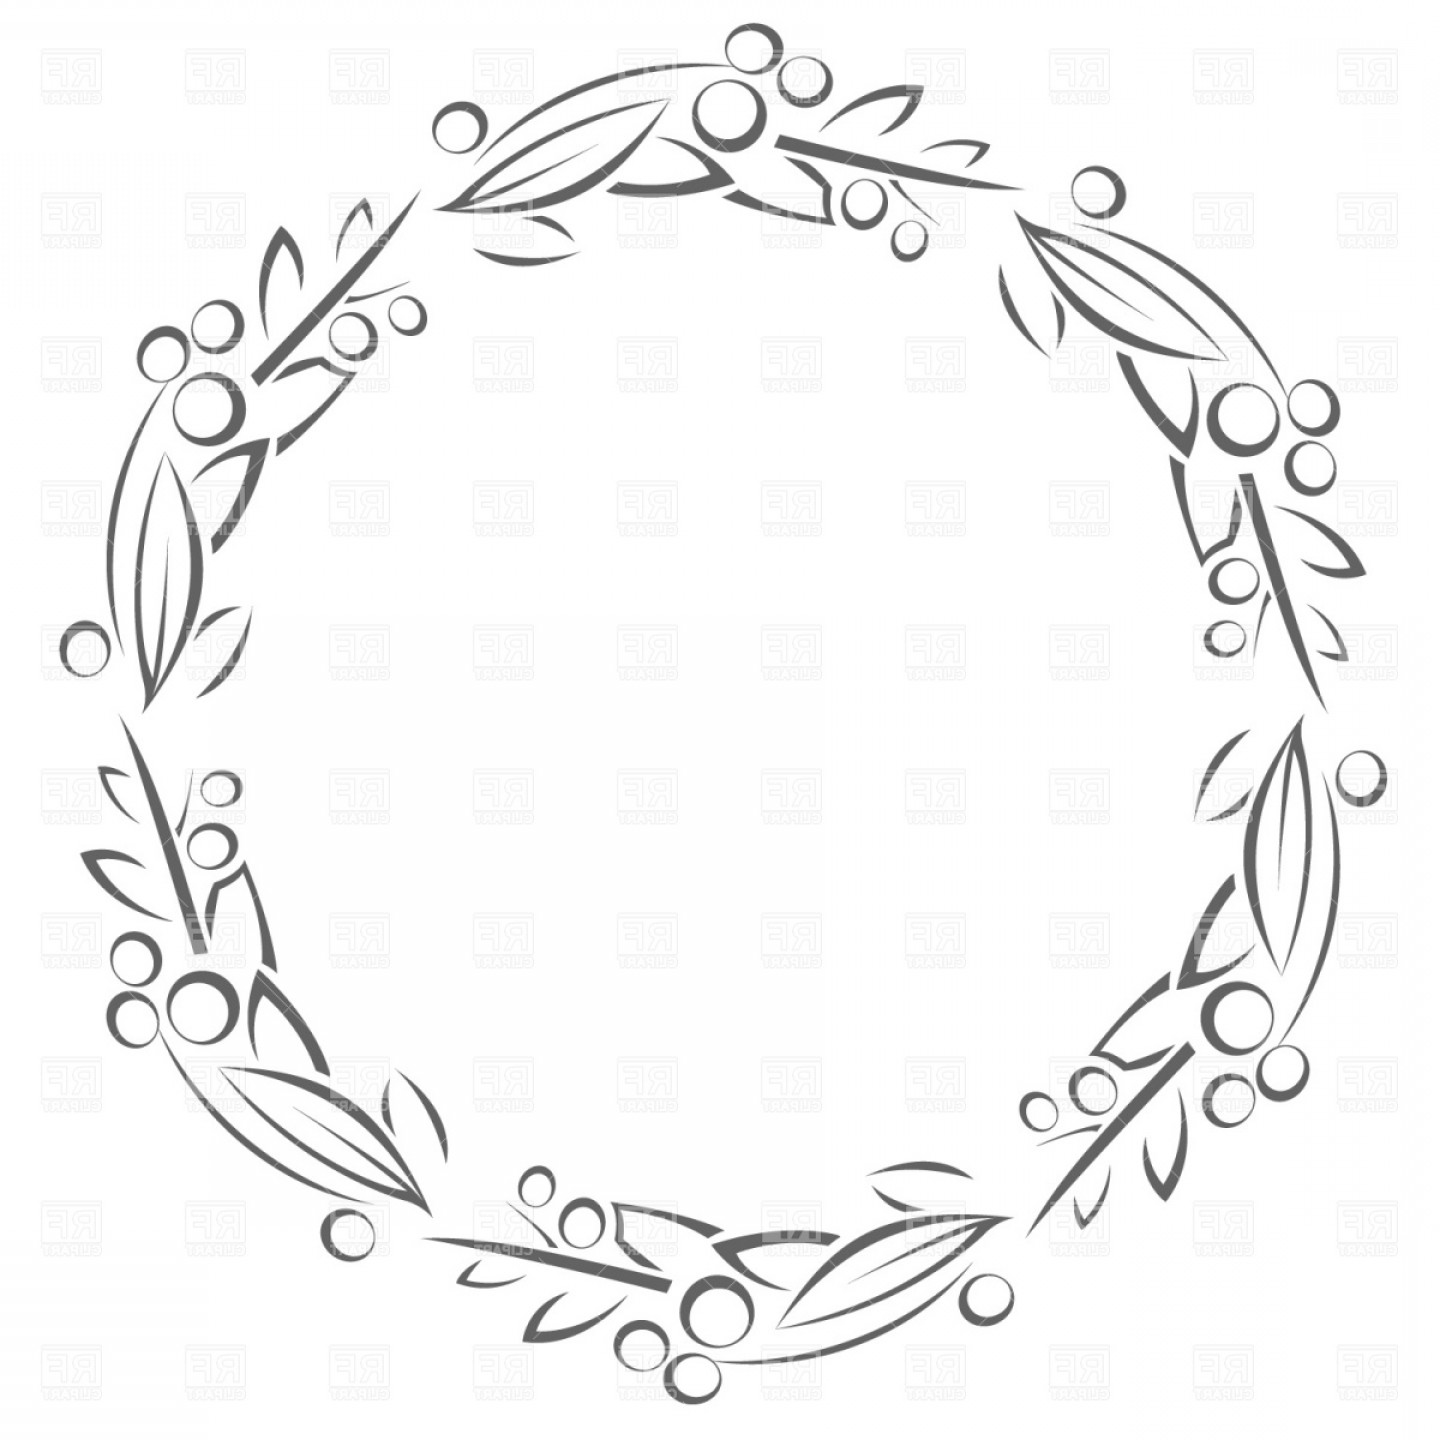 Borders circle leaves clipart graphic transparent library Circle Frame With Leaves Vector Clipart | SOIDERGI graphic transparent library